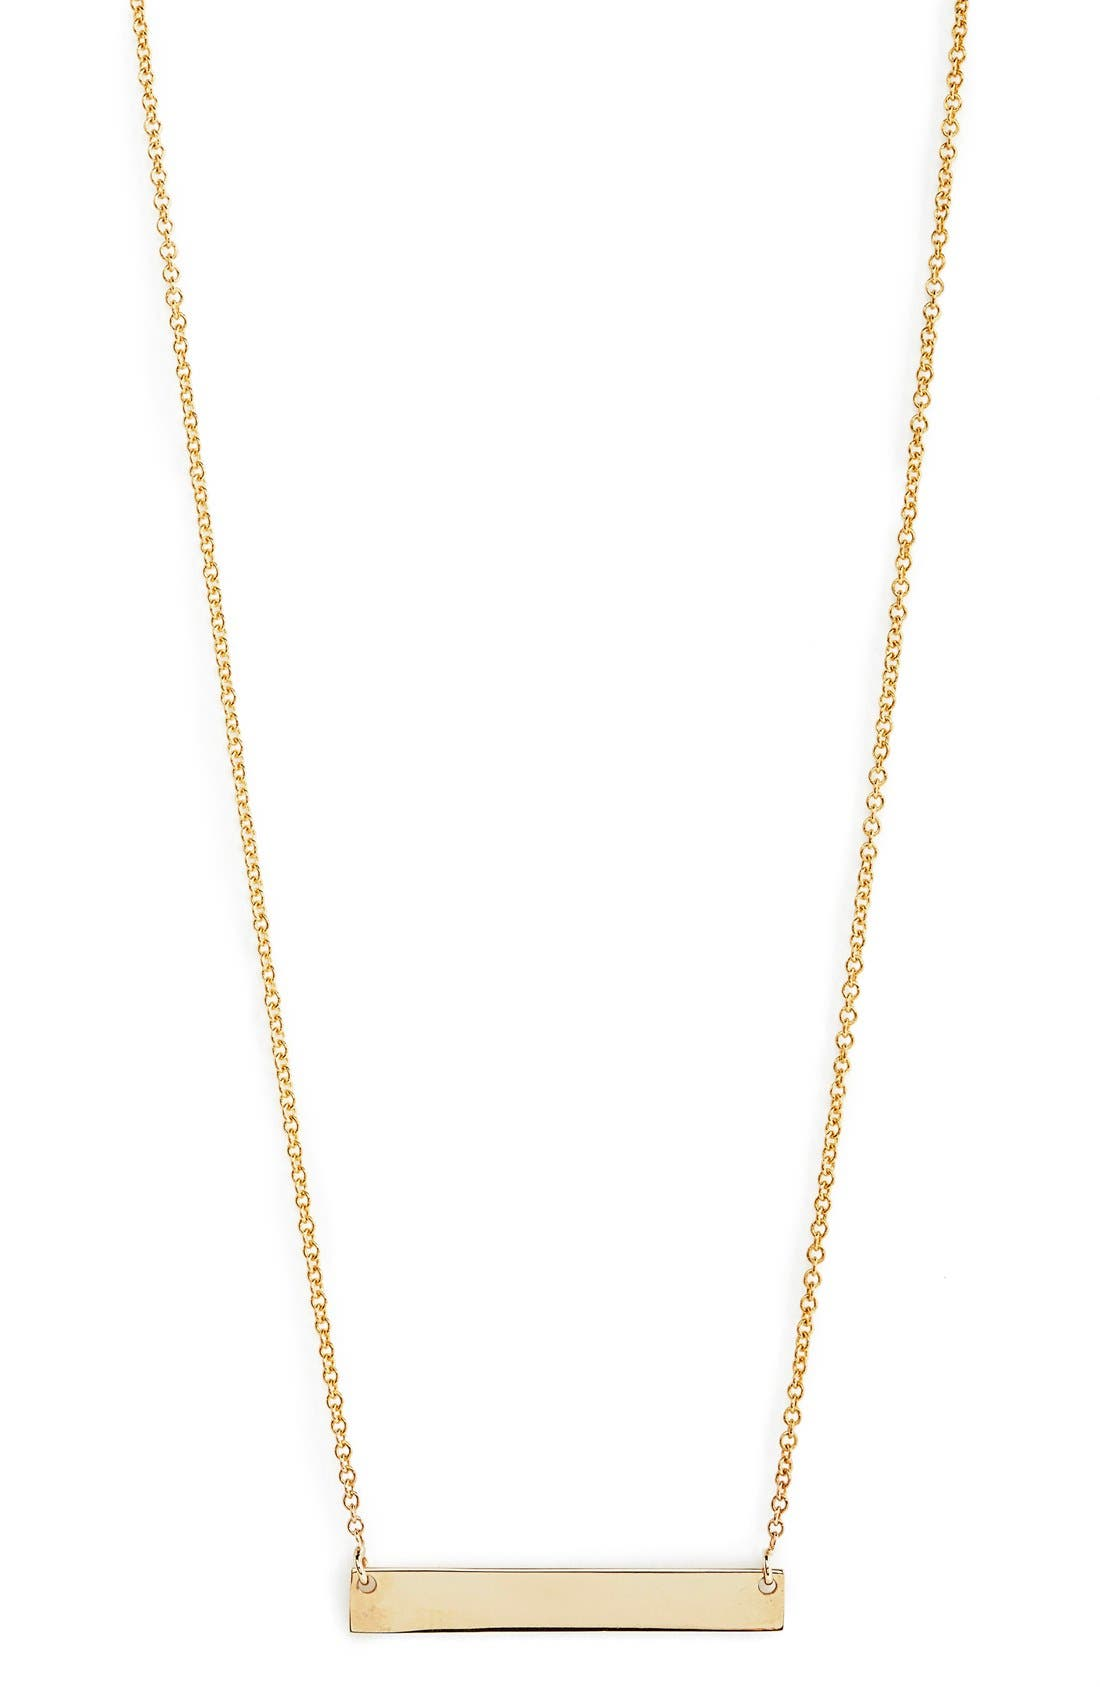 BONY LEVY 14k Gold Bar Pendant Necklace